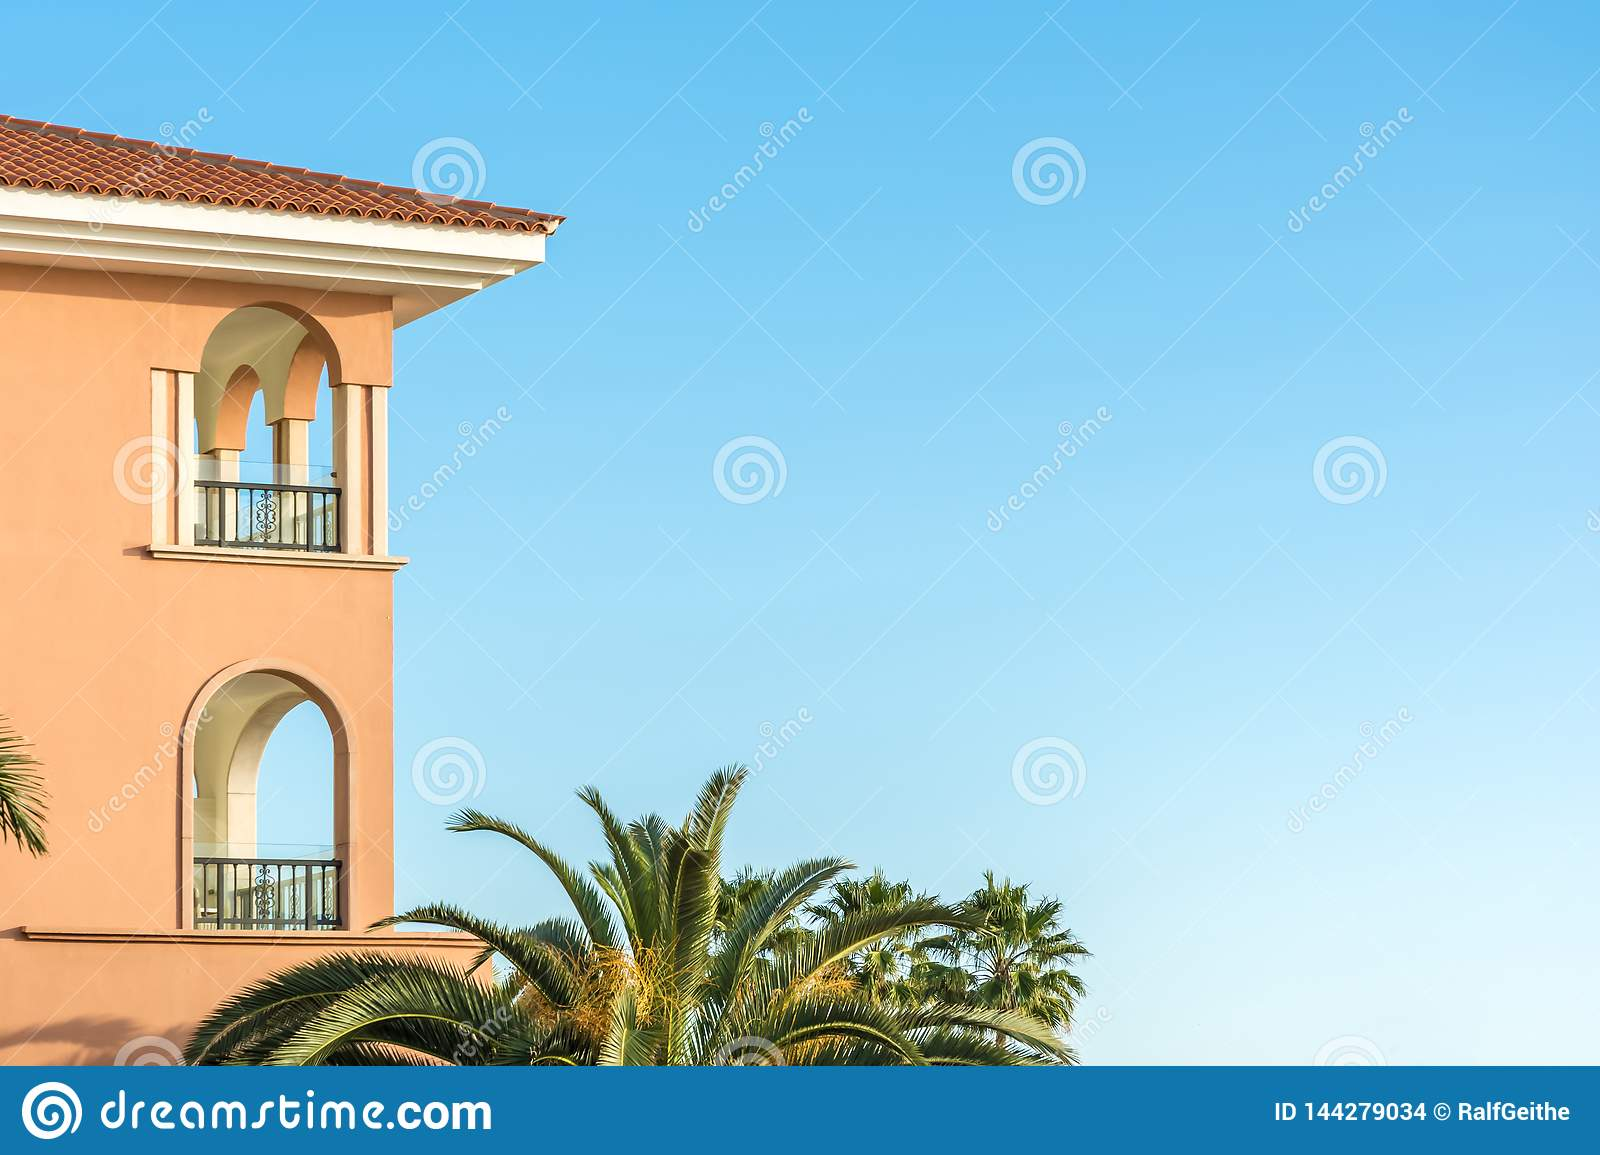 Part of a luxurious house in mediterranean style with palm trees and copy space in the blue sky